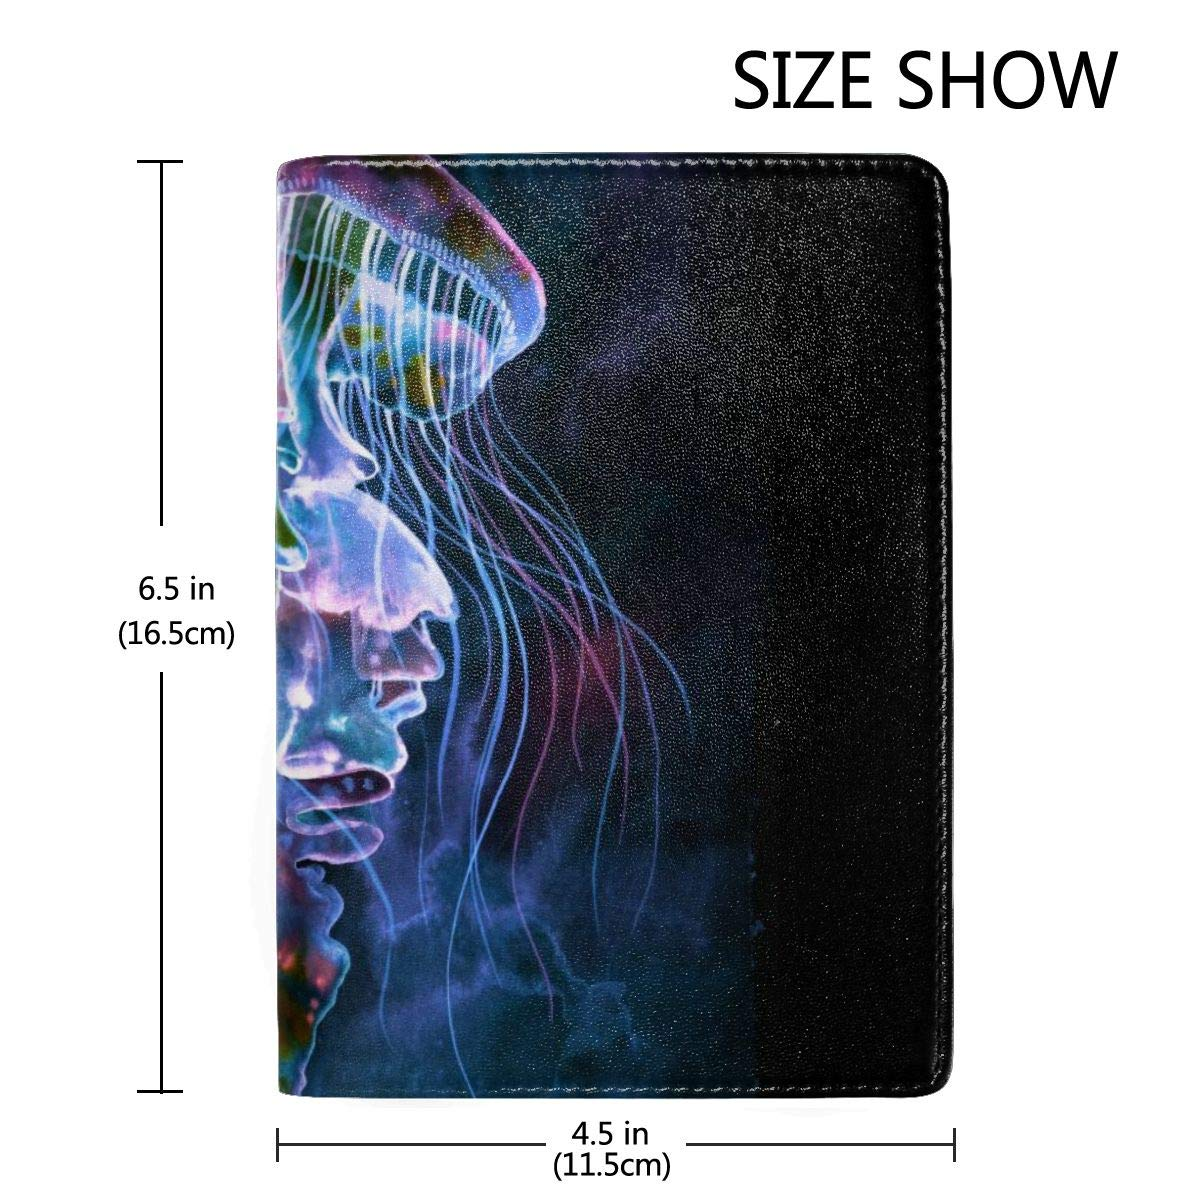 Watercolor Jellyfish Fashion Leather Passport Holder Cover Case Travel Wallet 6.5 In